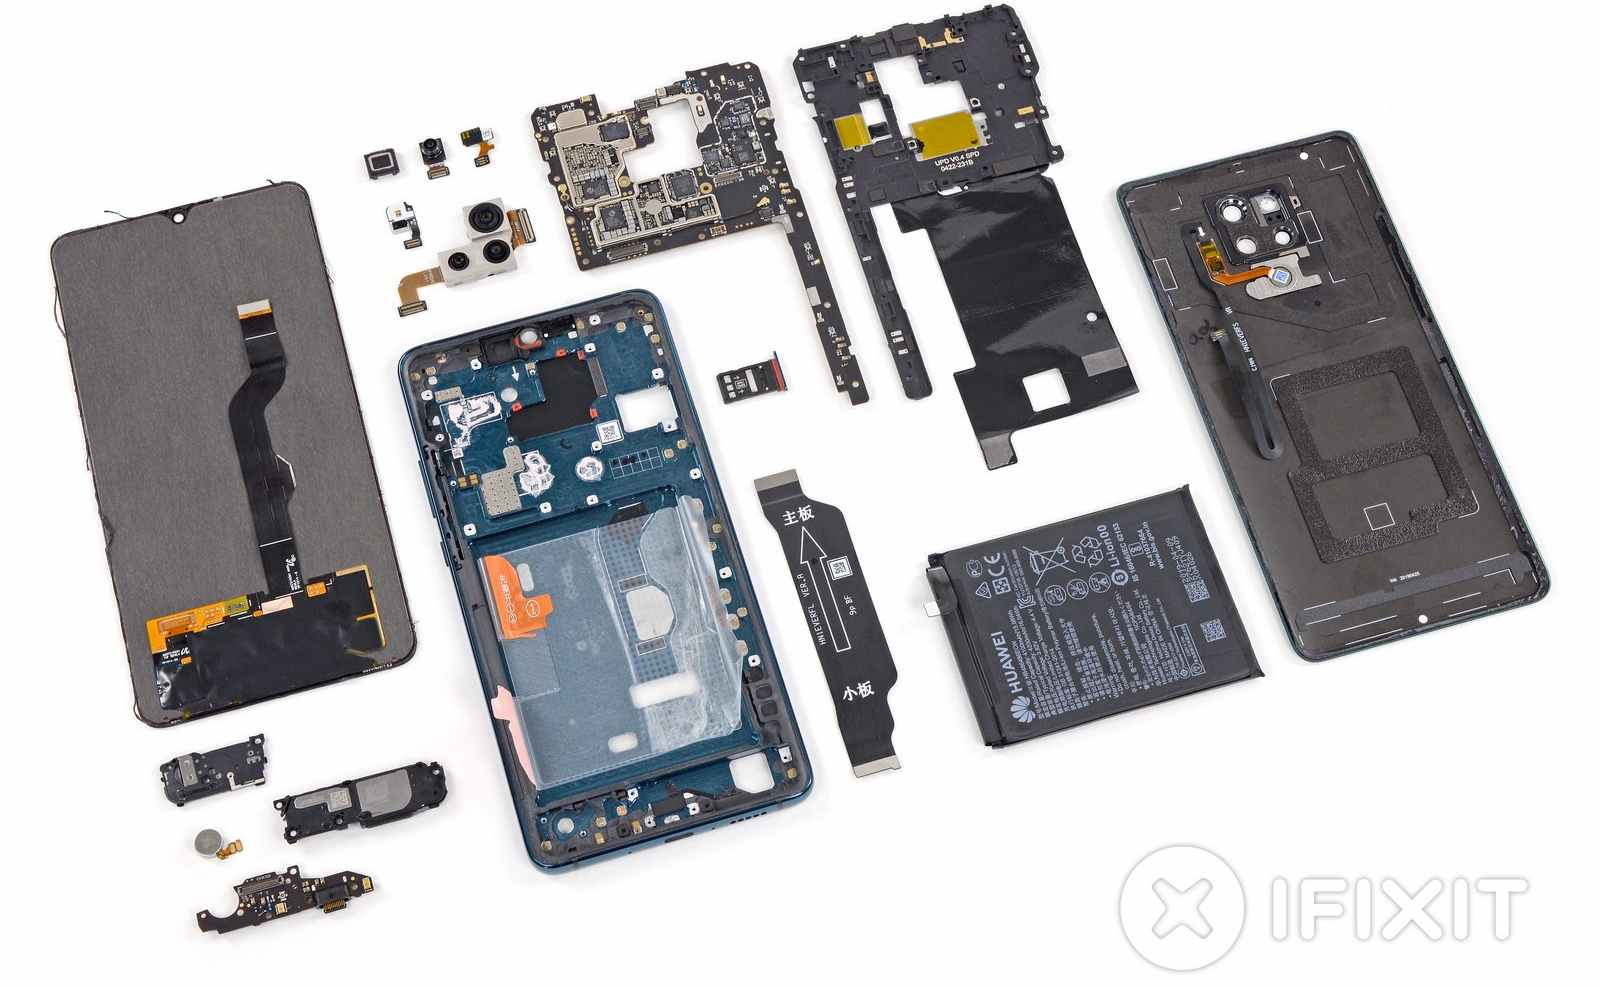 The laid-out parts of the Mate 20 X 5G